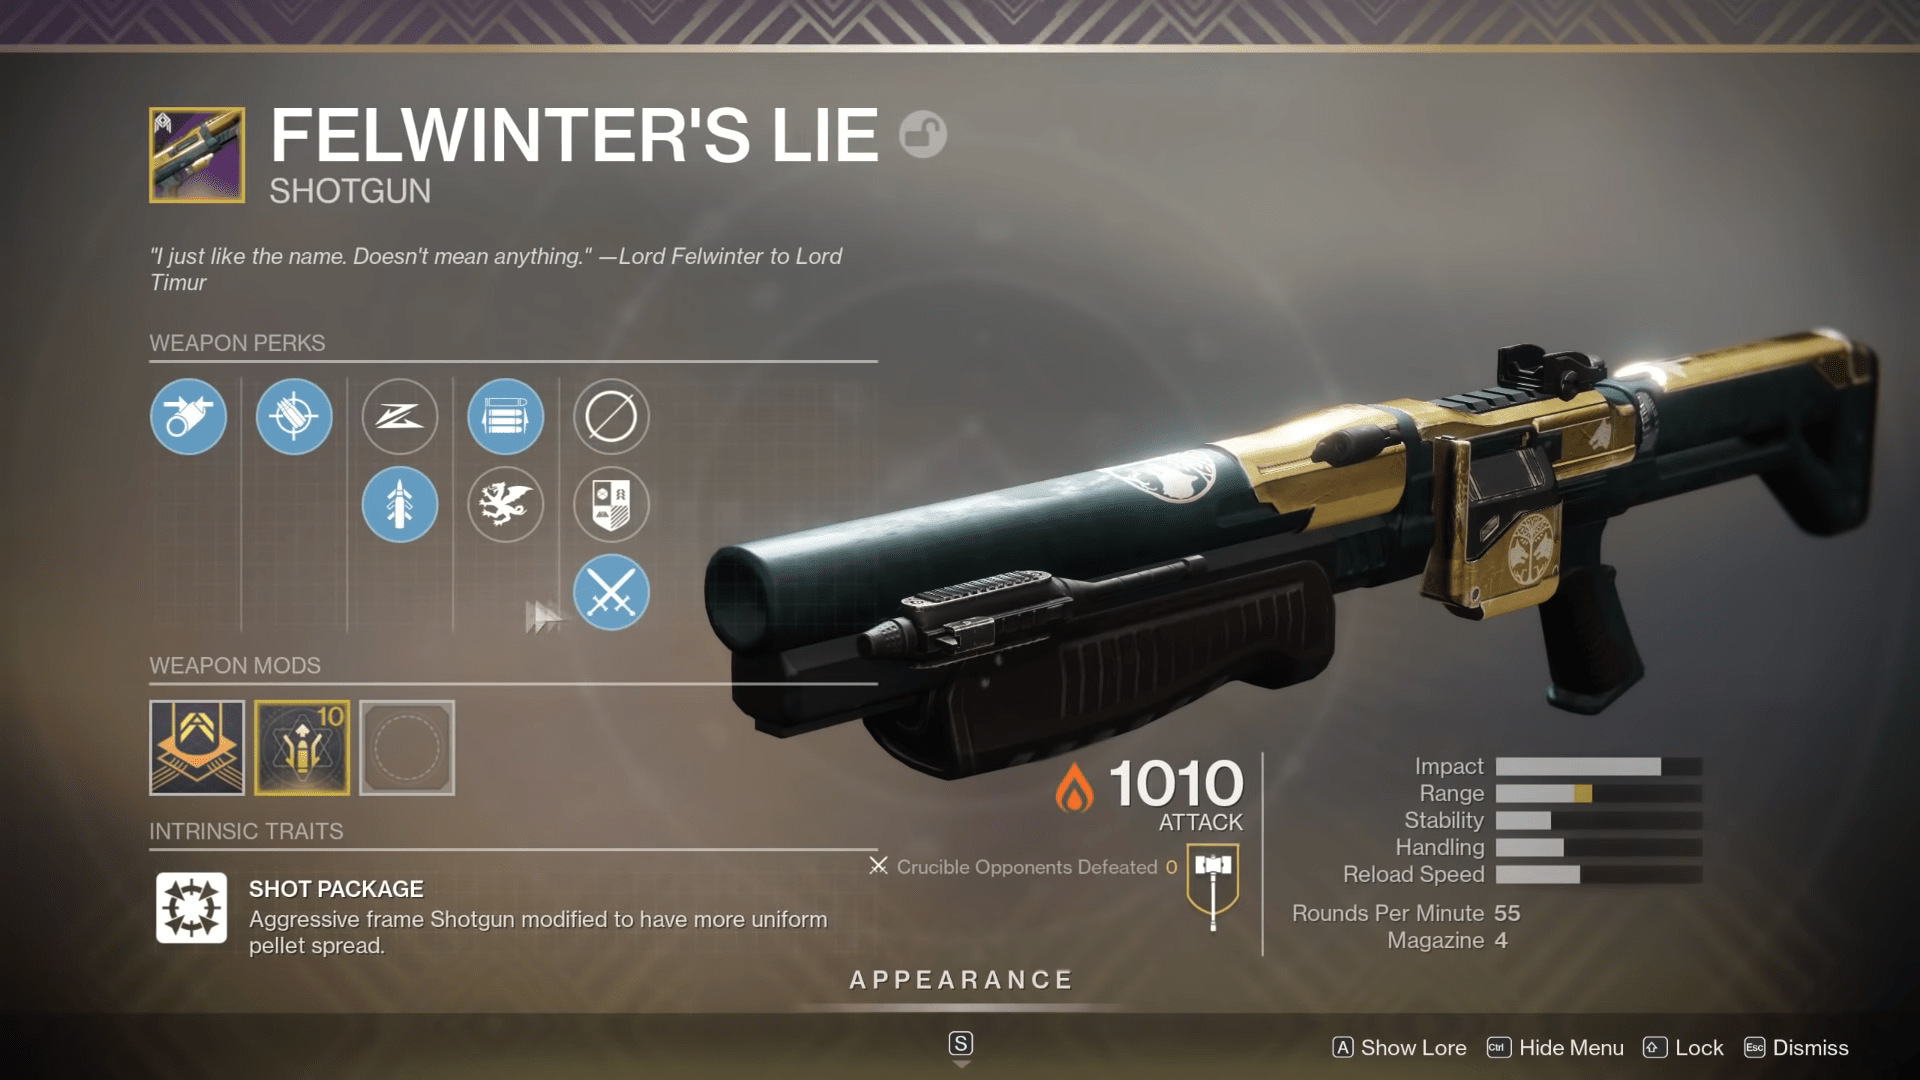 Destiny 2 The Lie Quest Walkthrough – How To Obtain Fellwinter's Lie Legendary Shotgun